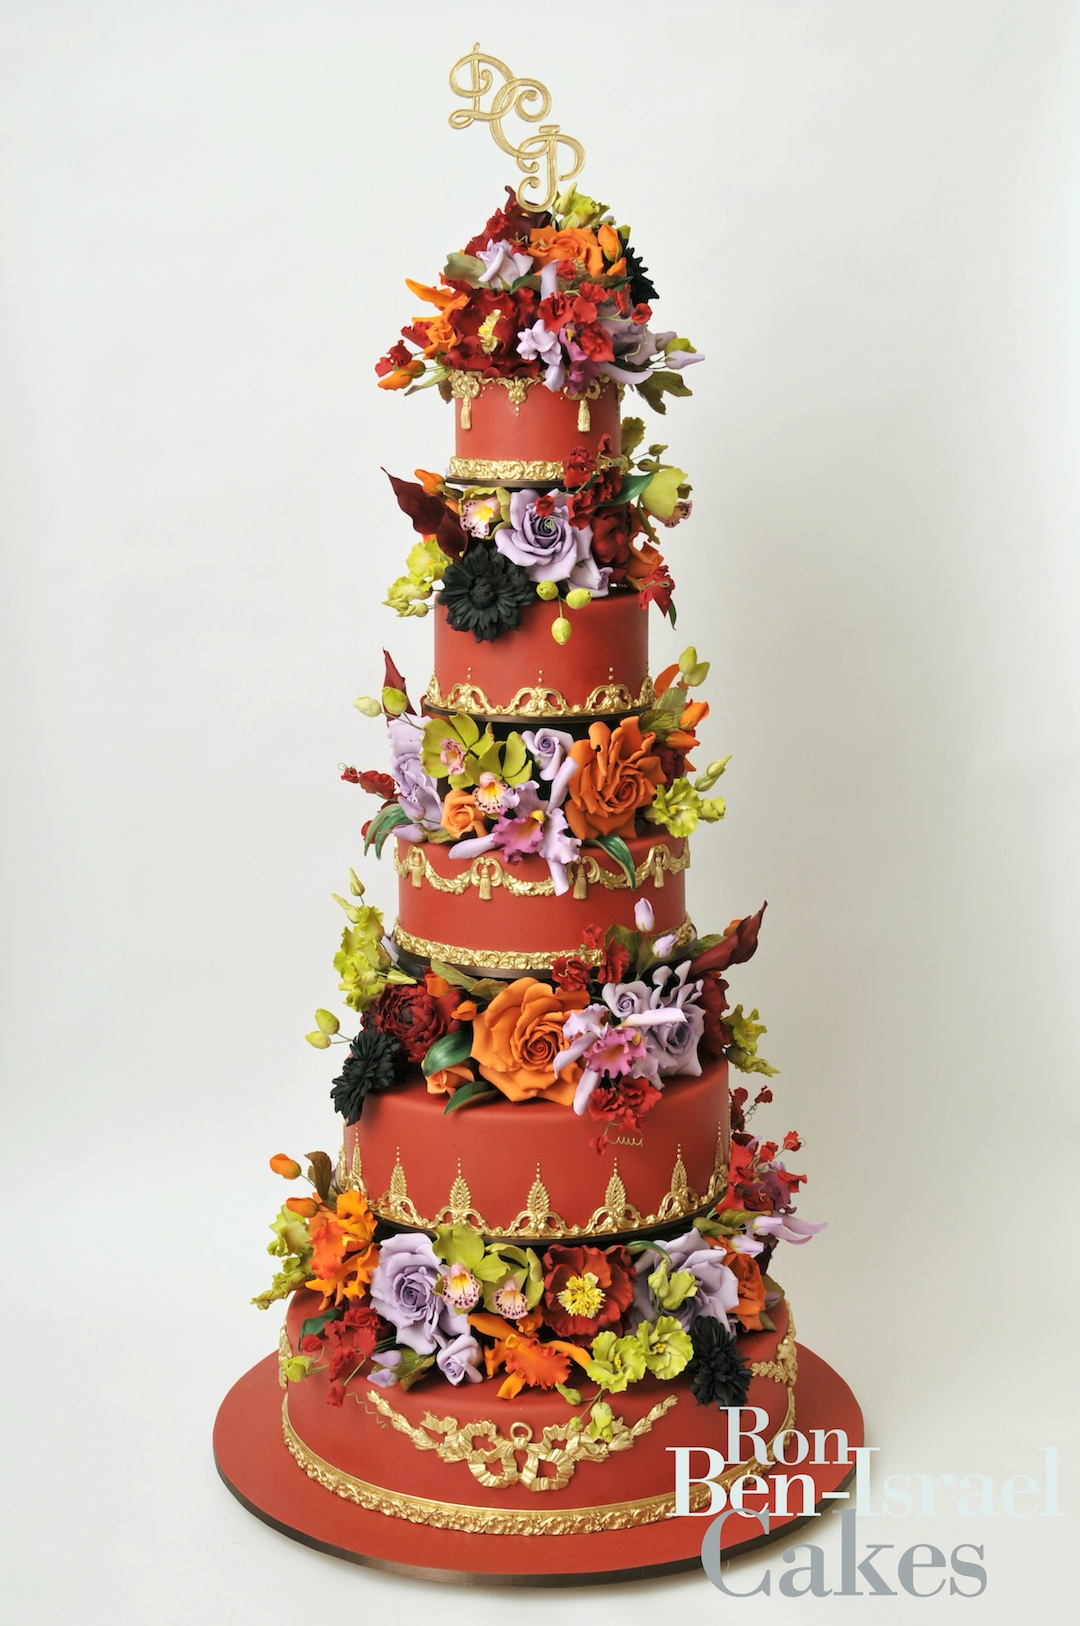 Wedding-cake-inspiration-ron-ben-isreal-wedding-cakes-terra-cotta-with-colorful-blooms.original.original